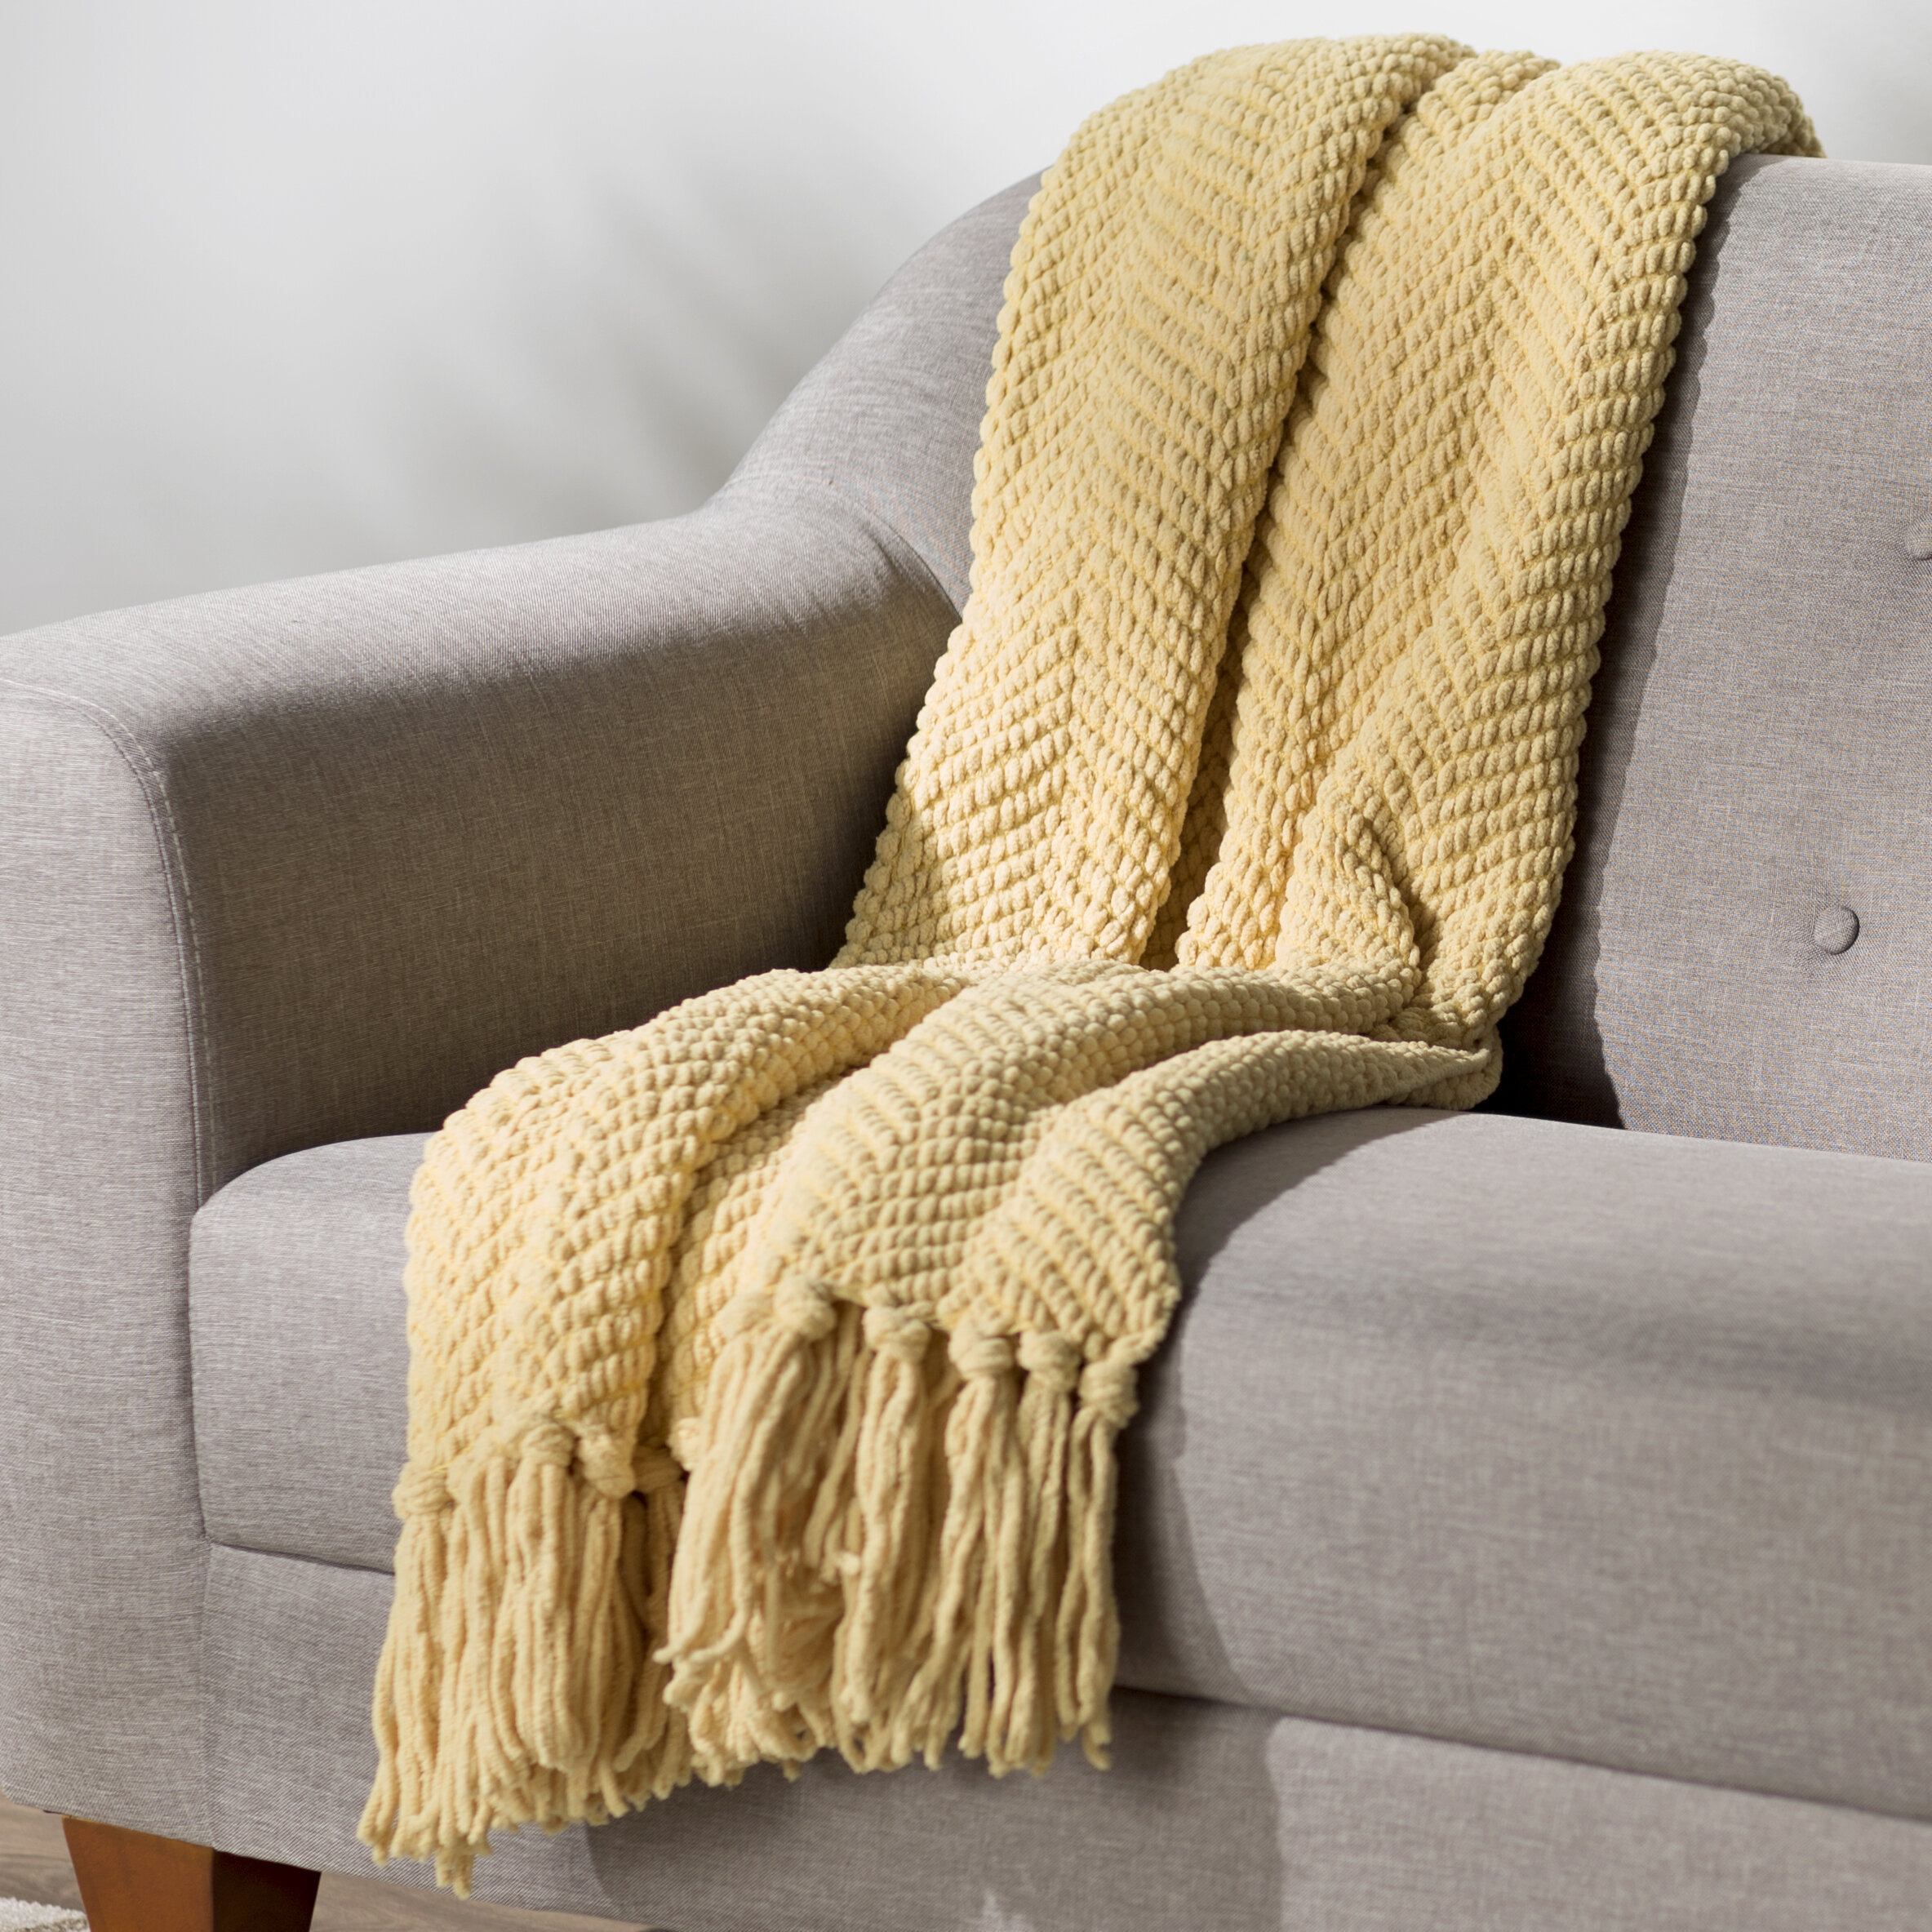 cotton garcia stacy throw couch eco southwest throws products by recycled oatmeal blanket